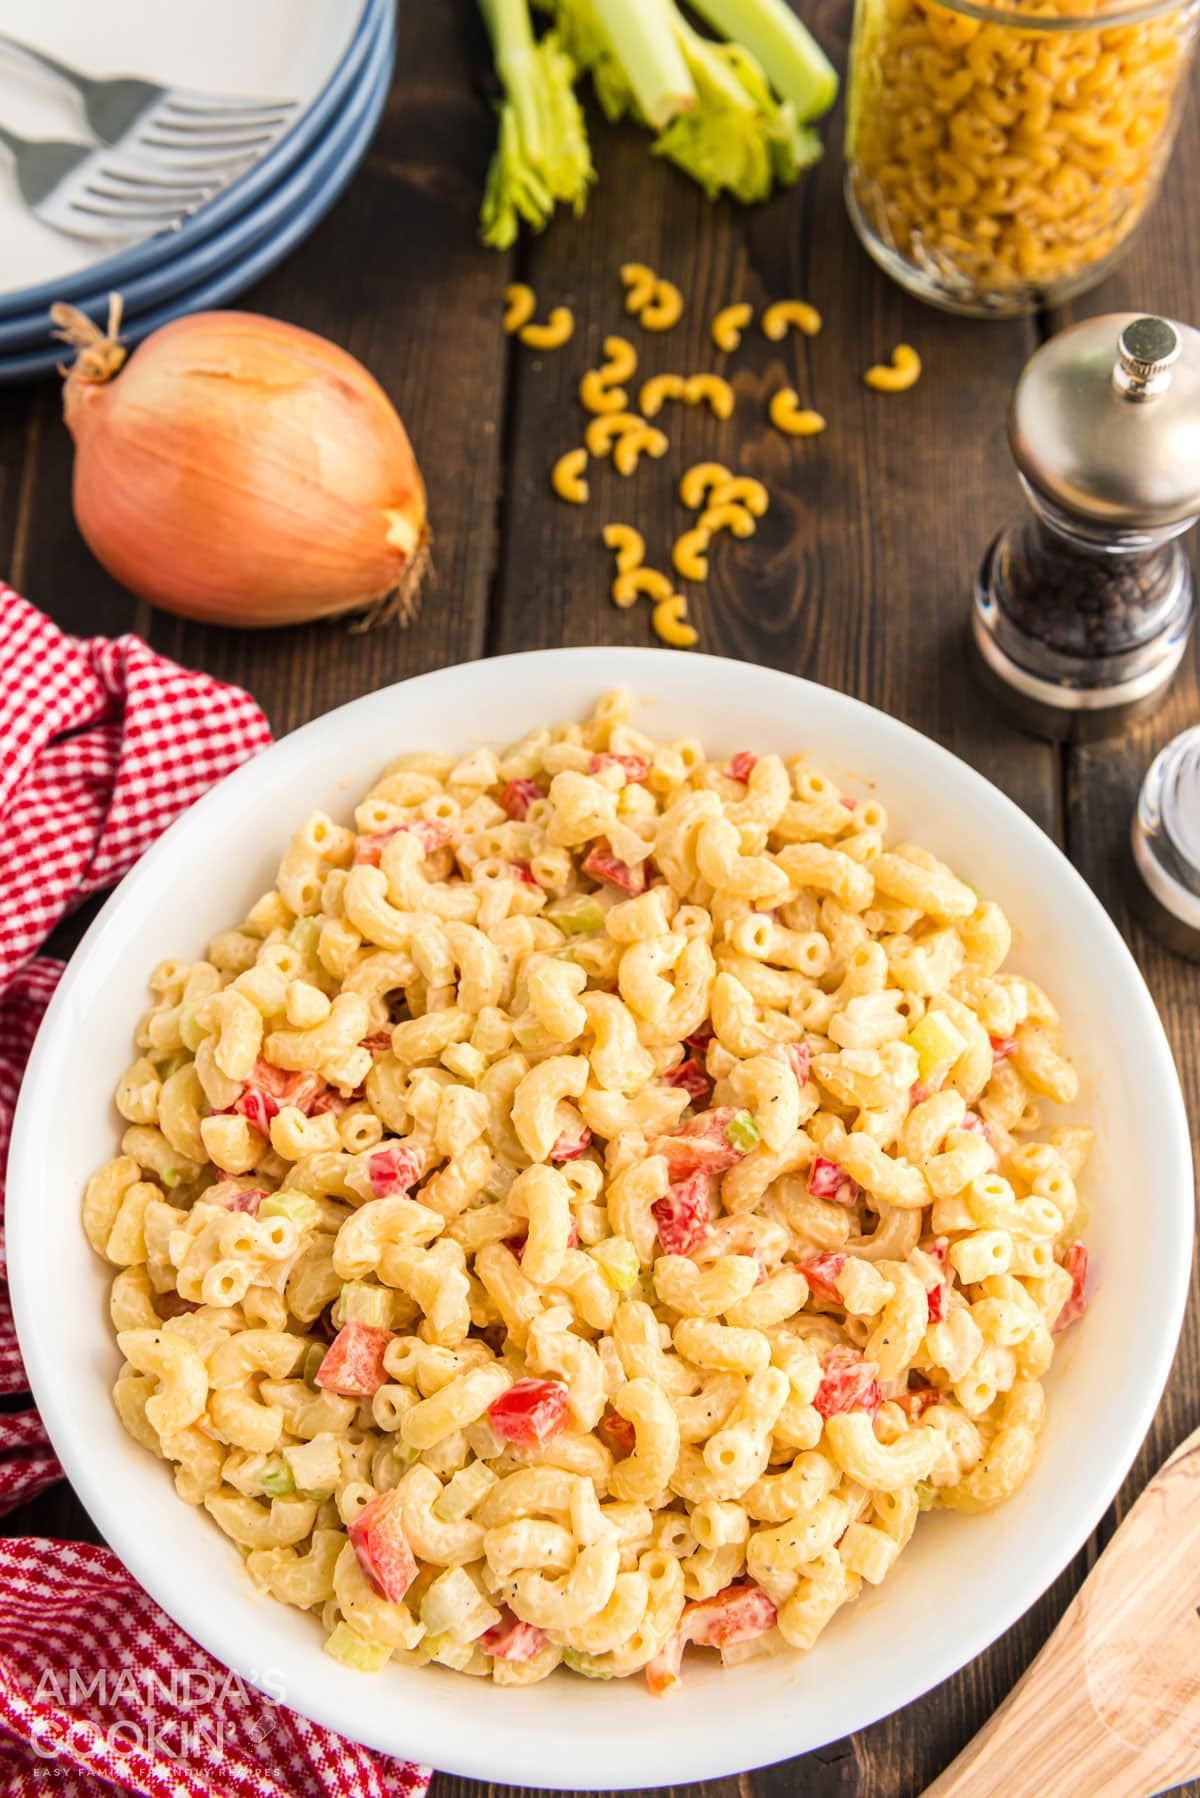 bowl of macaroni salad on a table with pepper, onion, dried pasta, and plates in background